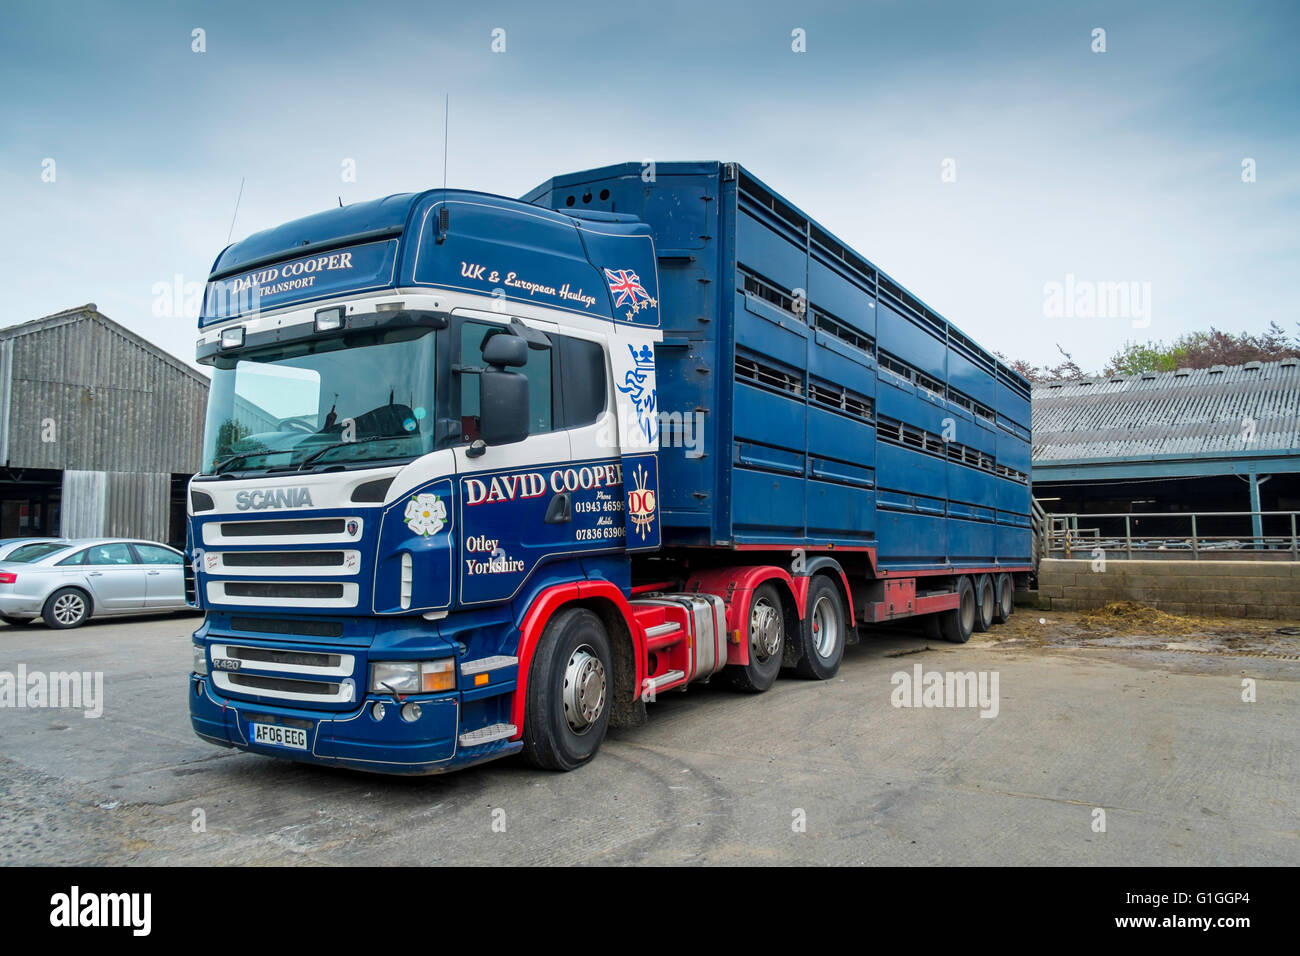 A David Cooper Transport Cattle Market Truck Waiting To Load Farm Animals Sold At Livestock Sale